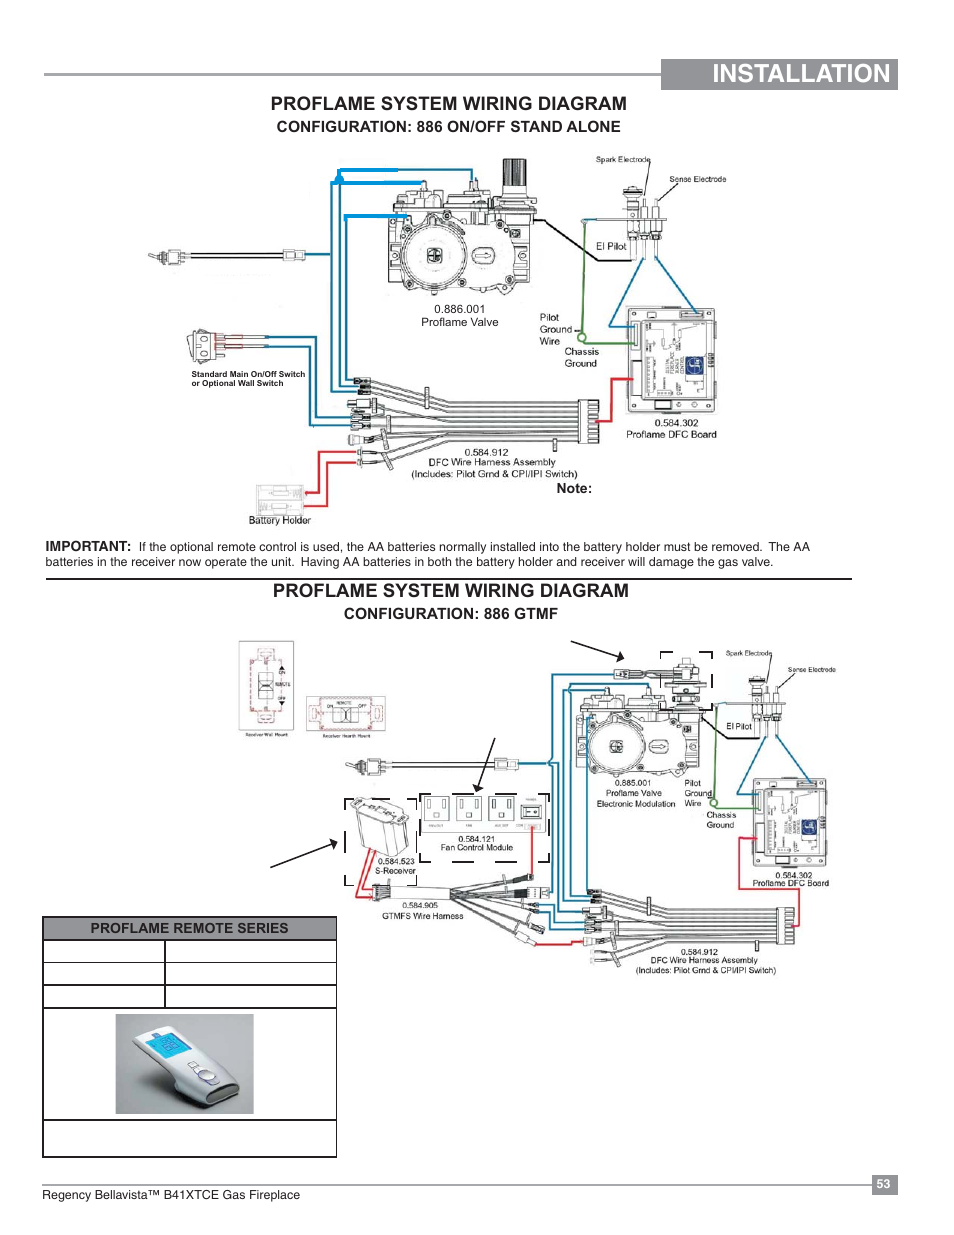 club car wiring diagram gas engine installation, proflame system wiring diagram | regency ...